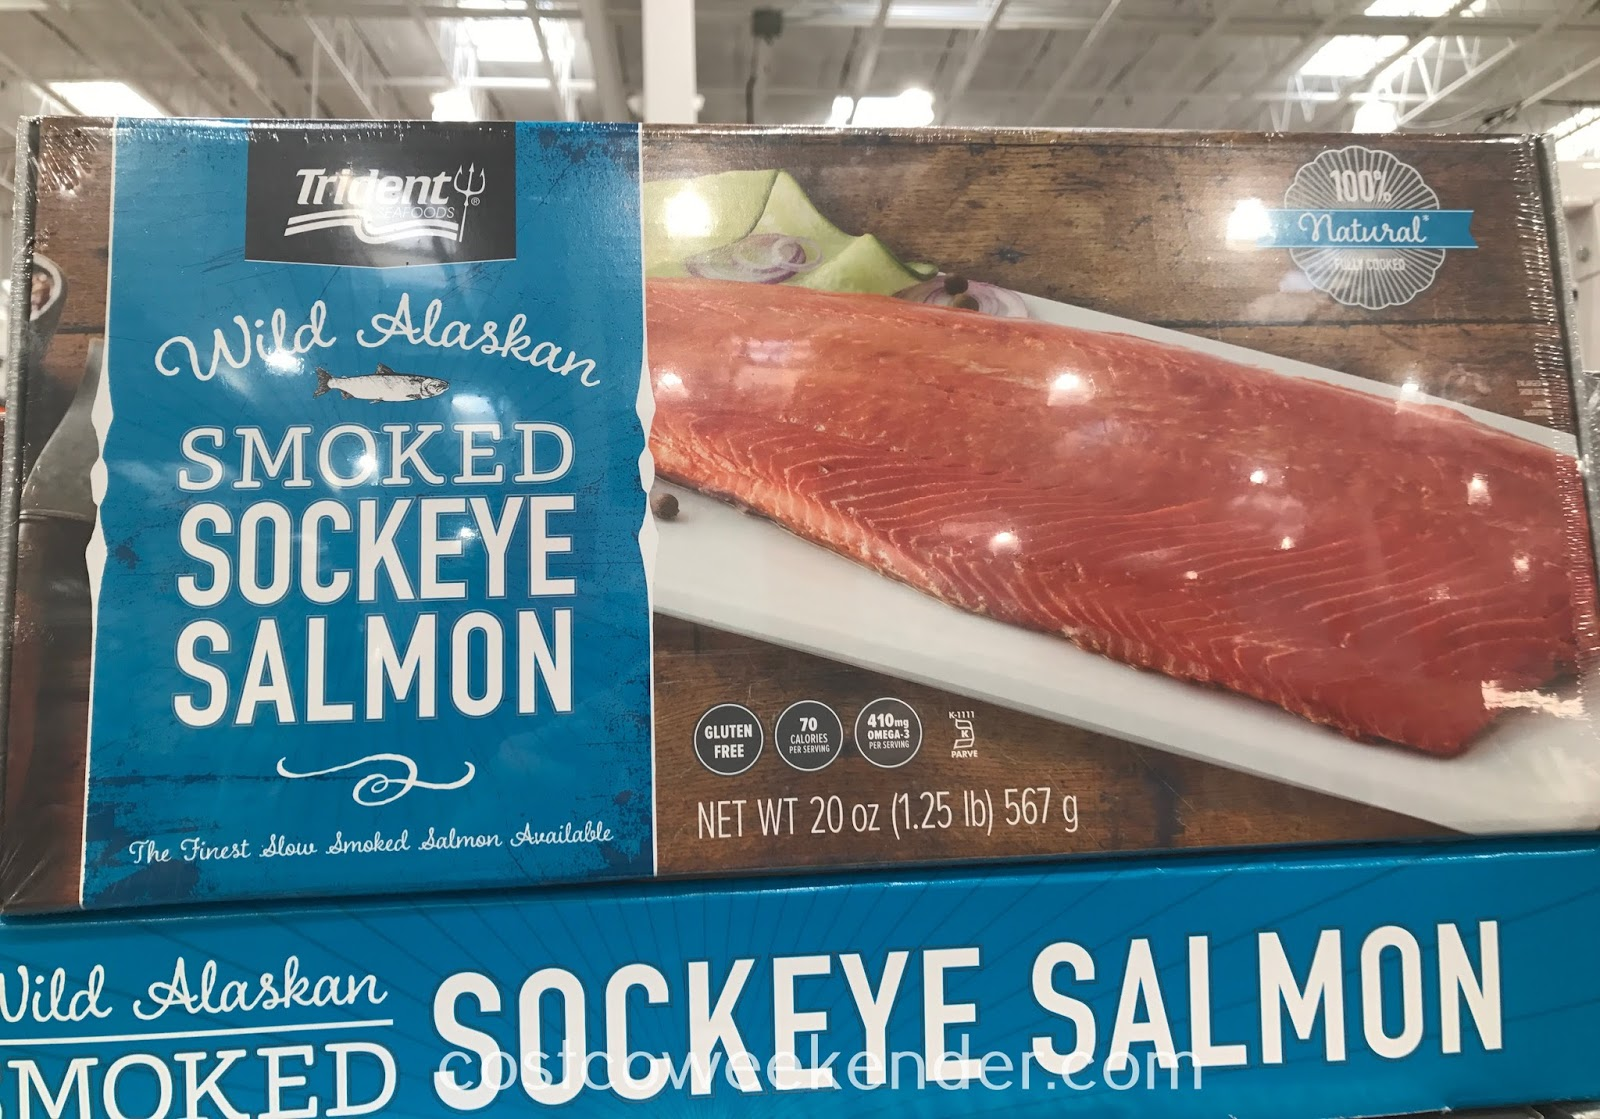 Enjoy a healthy protein by eating Wild Alaskan Smoked Sockeye Salmon